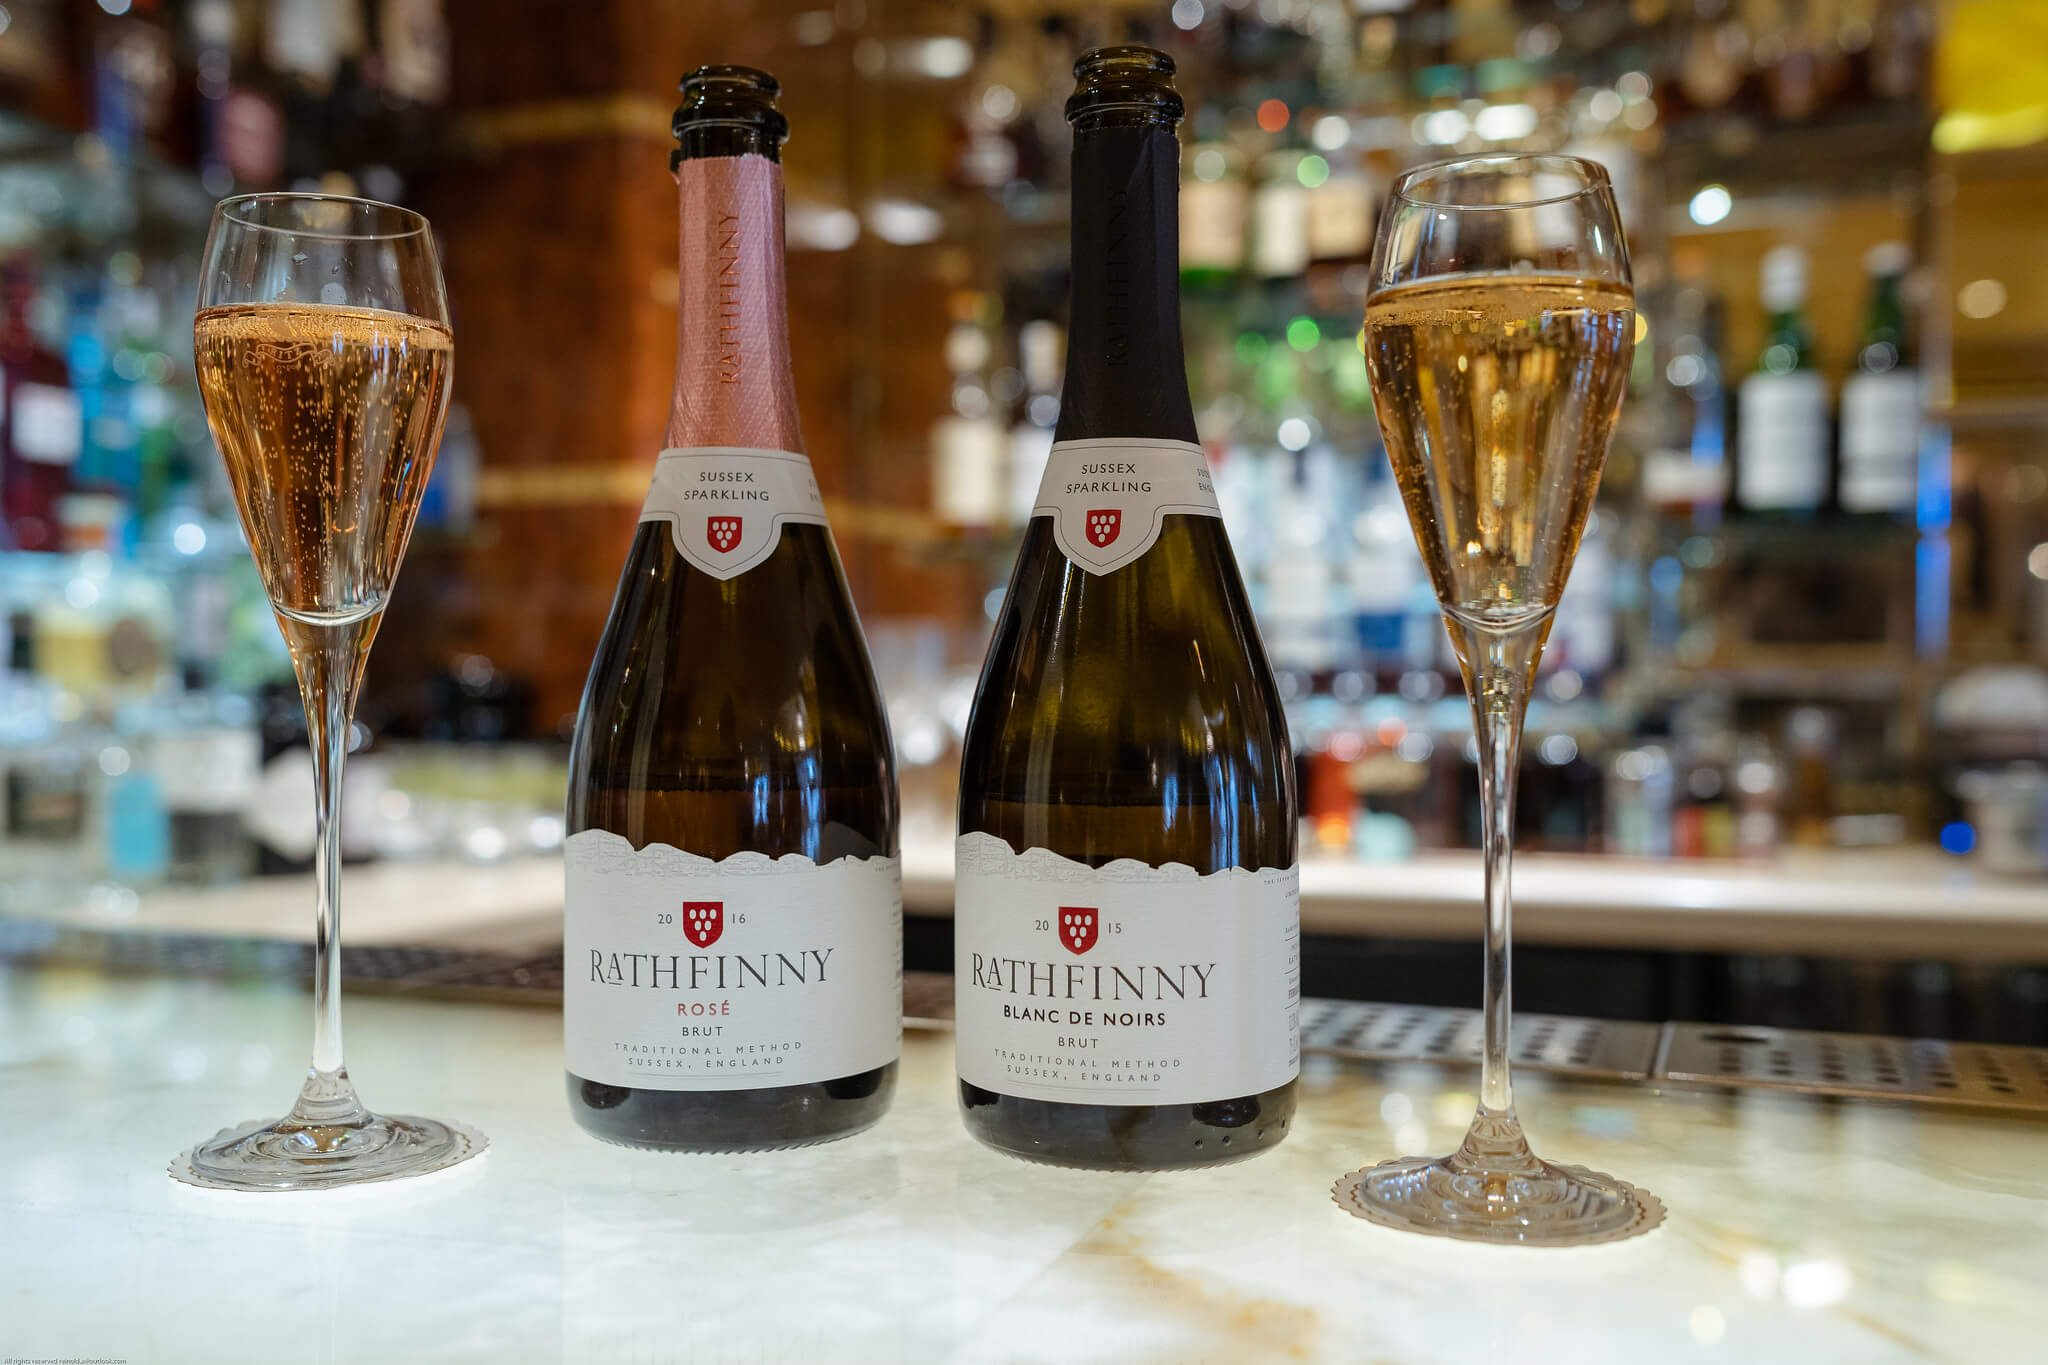 Rathfinny Sussex Sparkling Wine at the Ritz